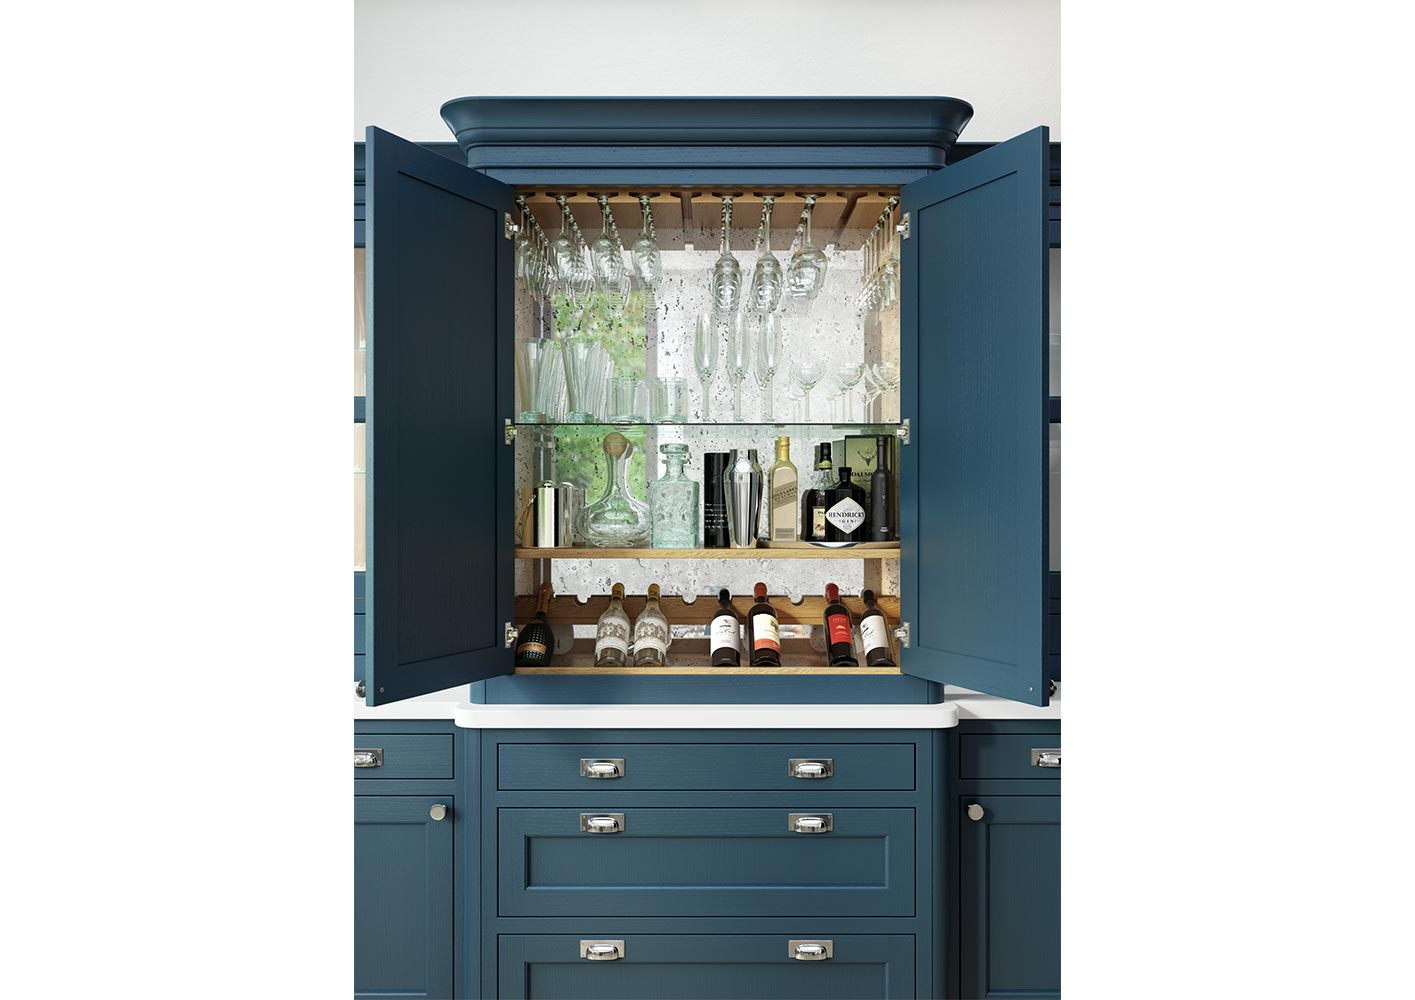 Inframe shaker style kitchen-dresser-drinks-cabinet